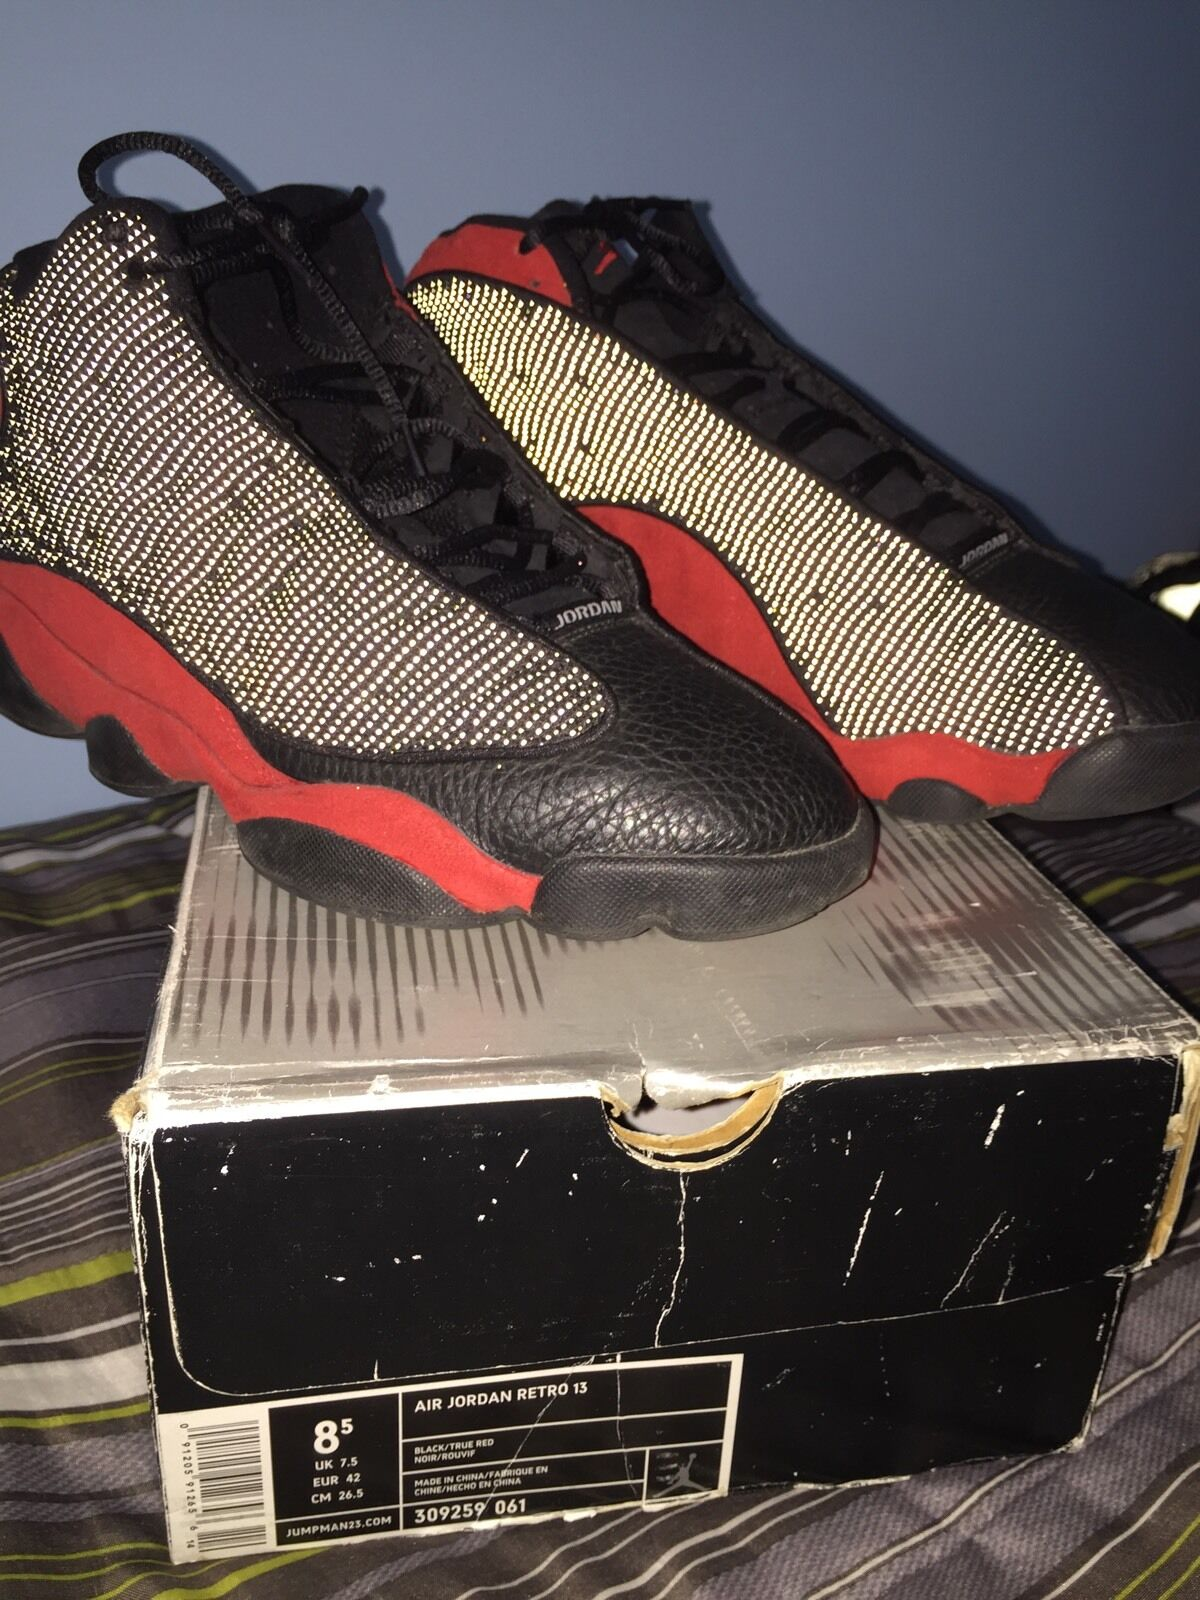 Air Jordan 13 Bred Size 8.5 Concord, Playoff, Bred